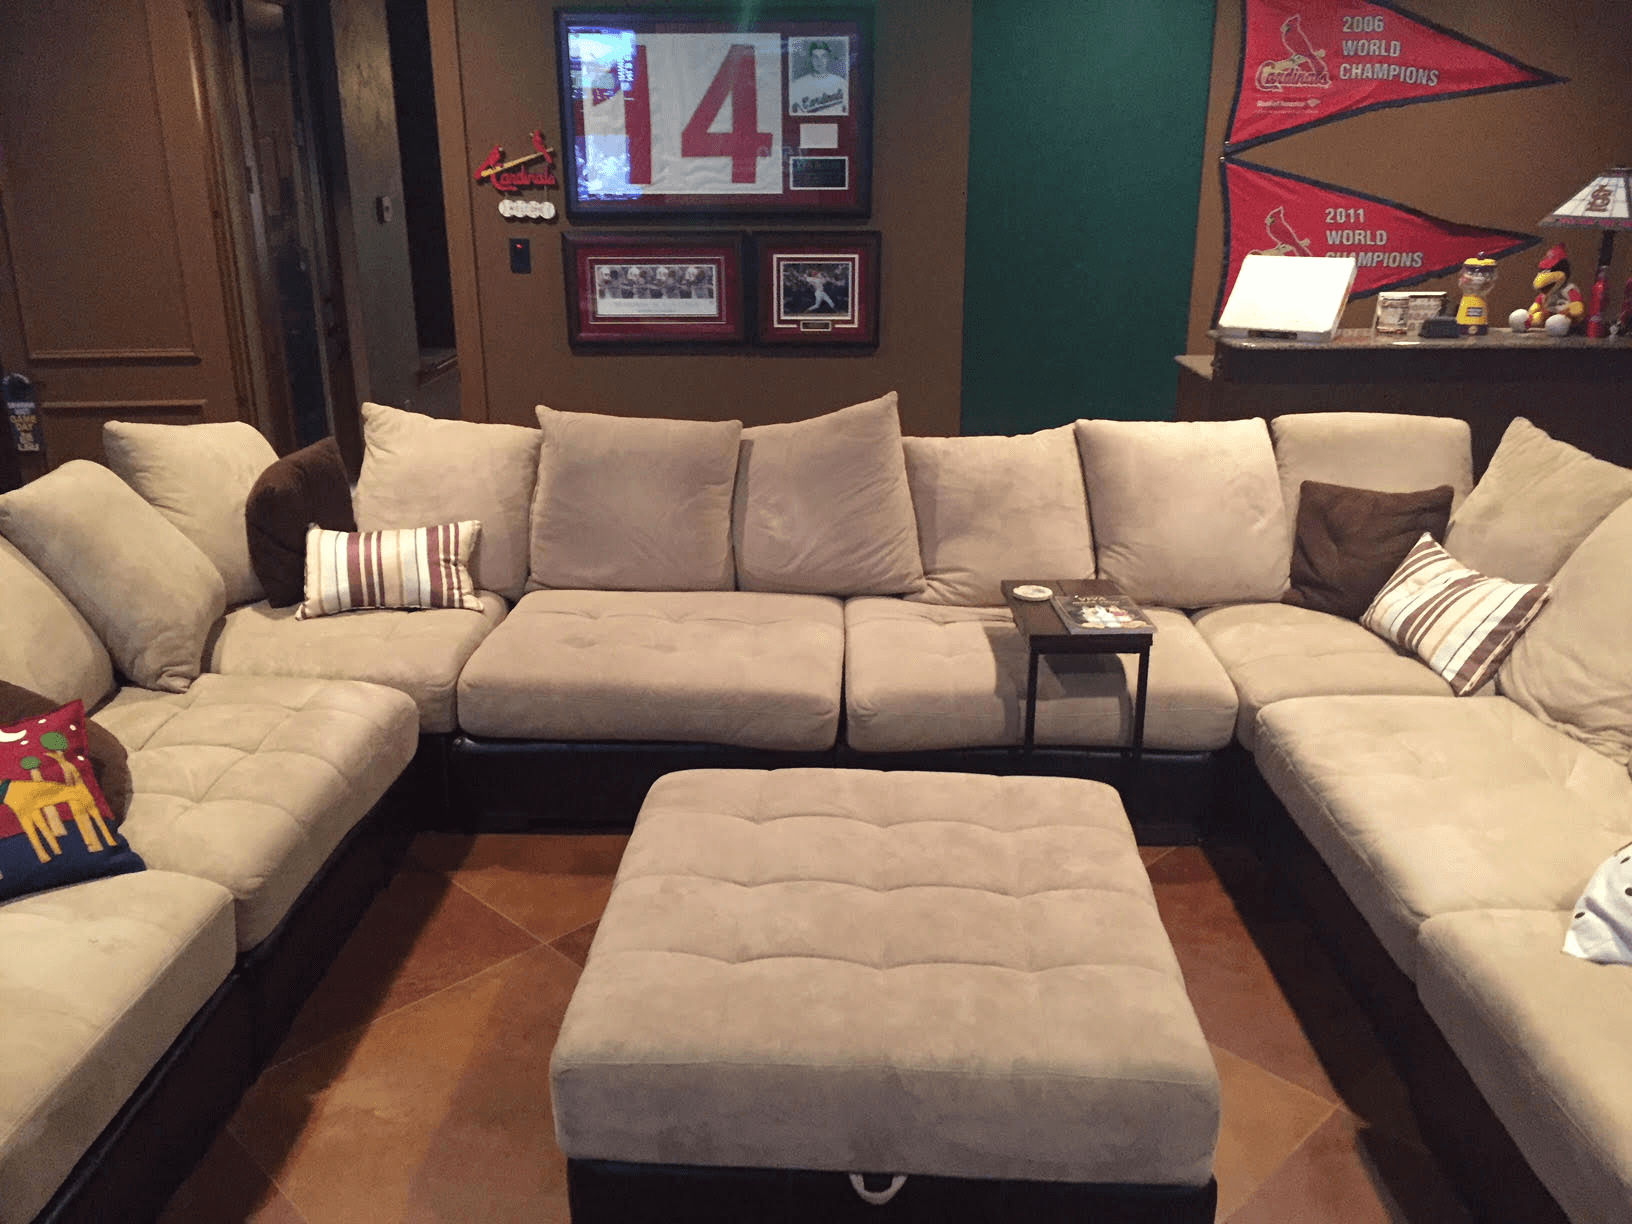 Sectional couch in man cave